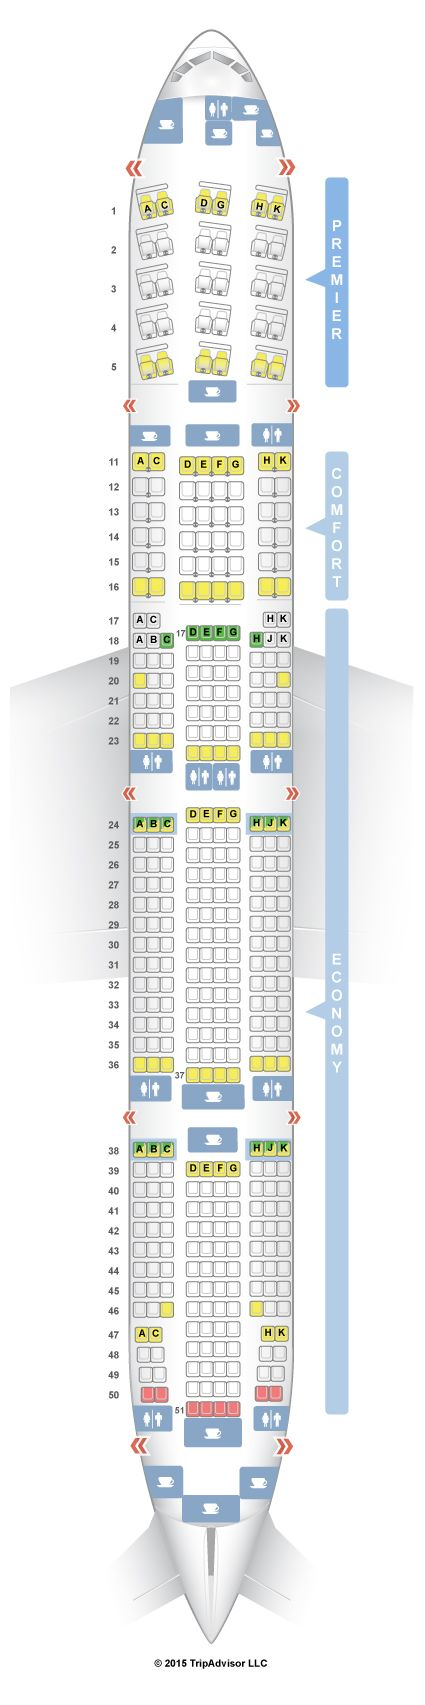 20 best ideas about boeing 777 300 seating on pinterest for Plan cabine 777 300er